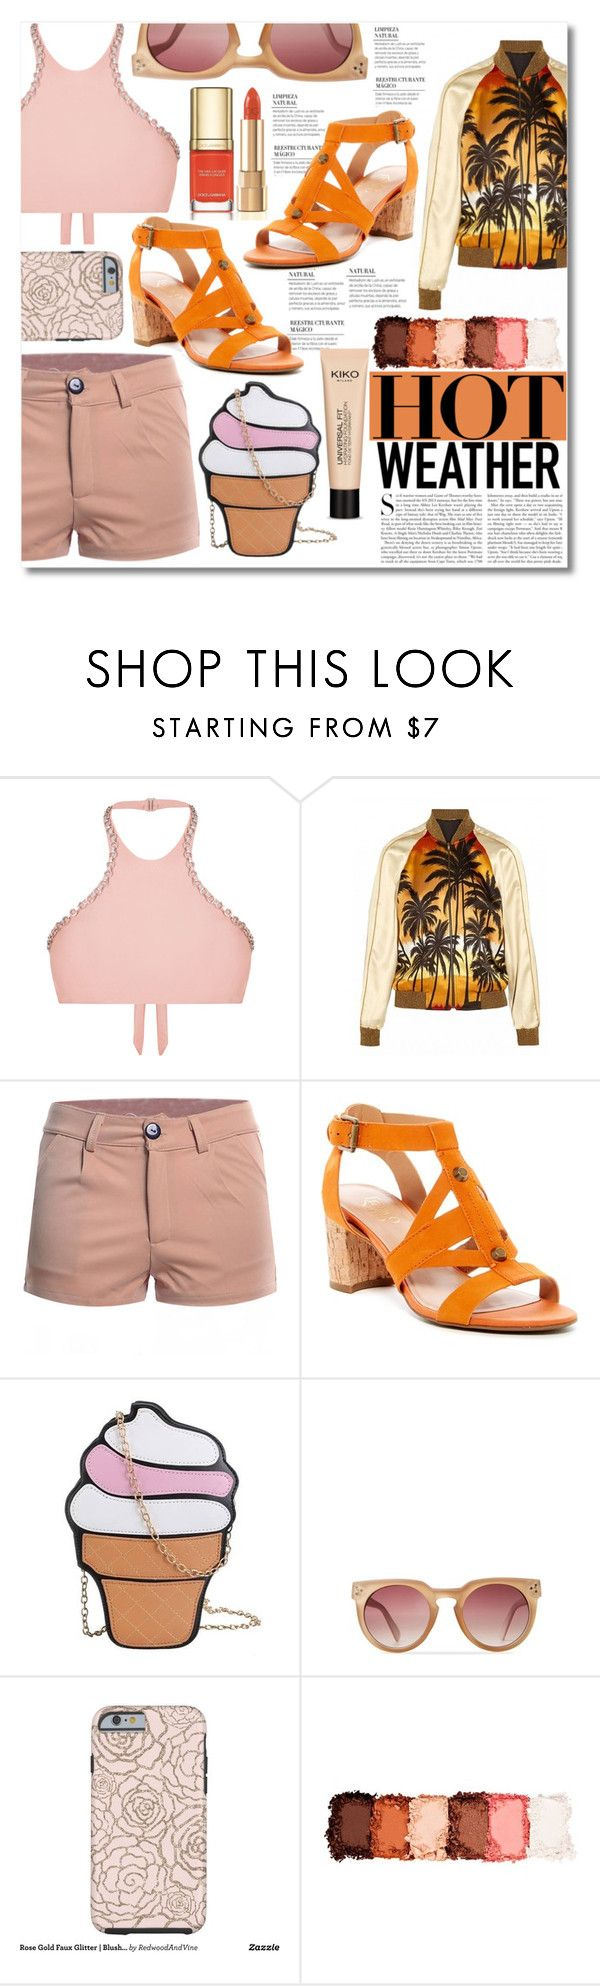 """Hot Weather Outfit"" by elizabeth4ever ❤ liked on Polyvore featuring Franco Sarto, Kershaw, Dolce&Gabbana and NYX"